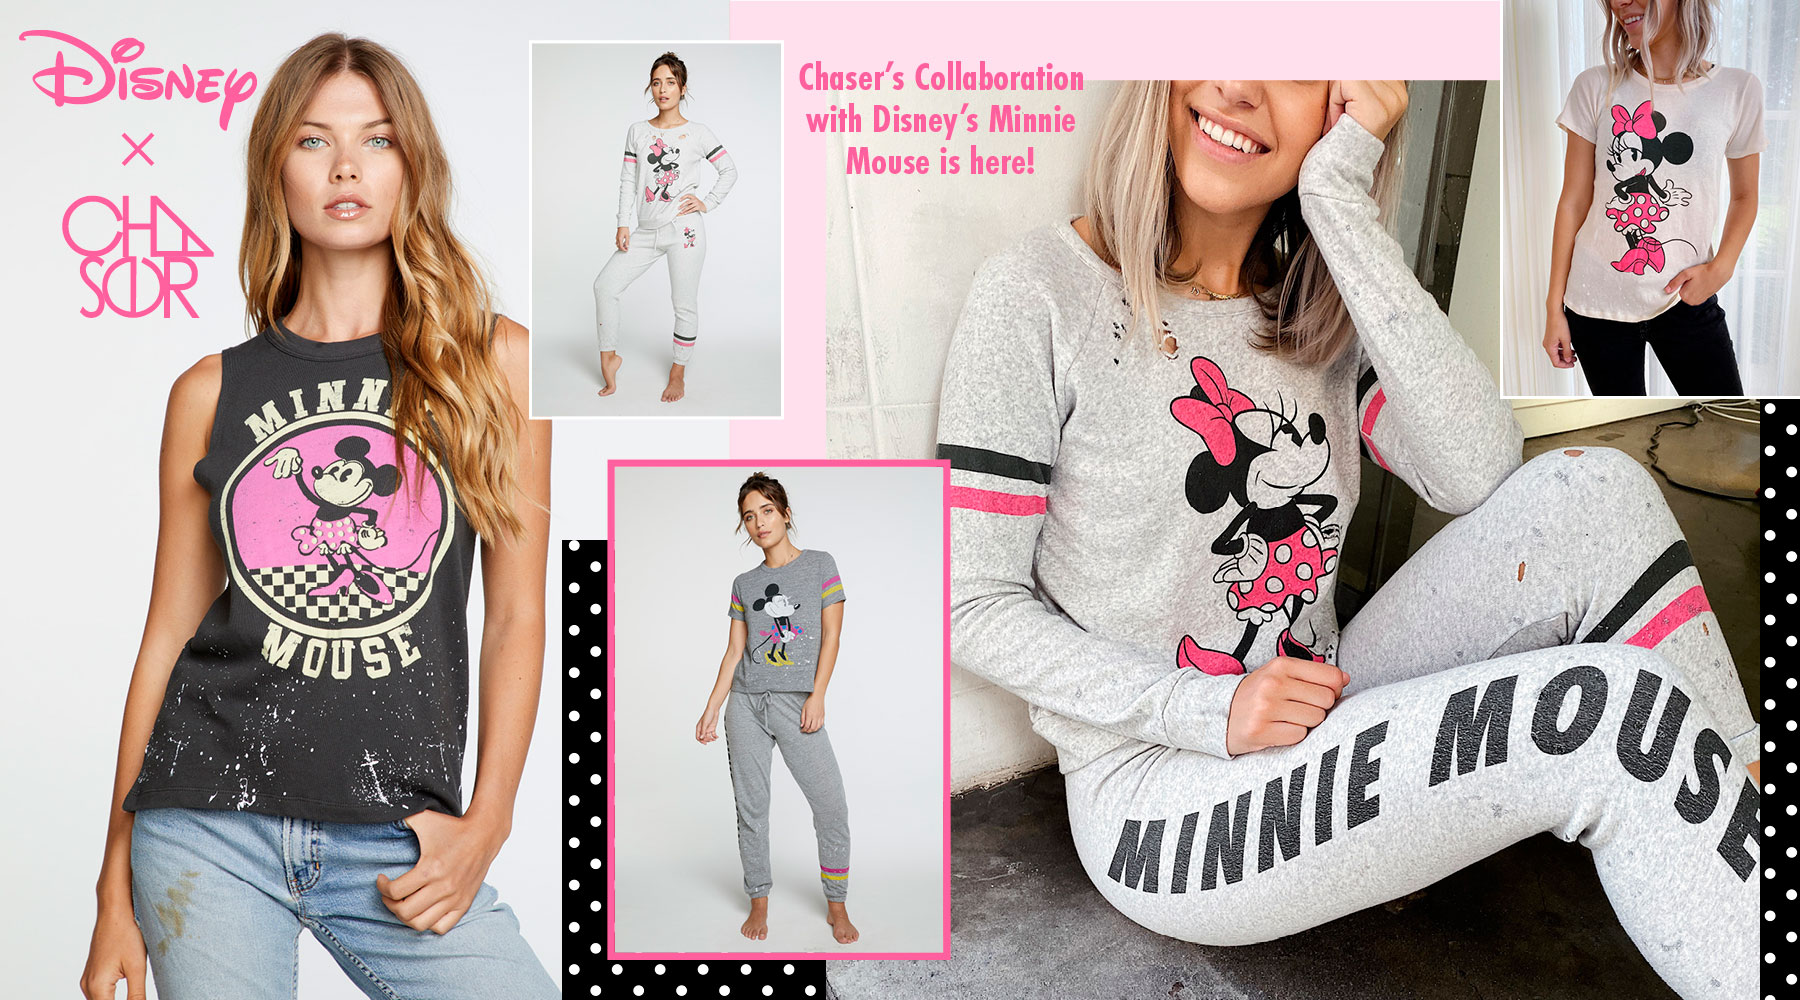 Check out all of Chaser and Disney's collaborations, including Disney's Minnie Mouse, Disney's the Little Mermaid, Disney's Frozen II and Star Wars!